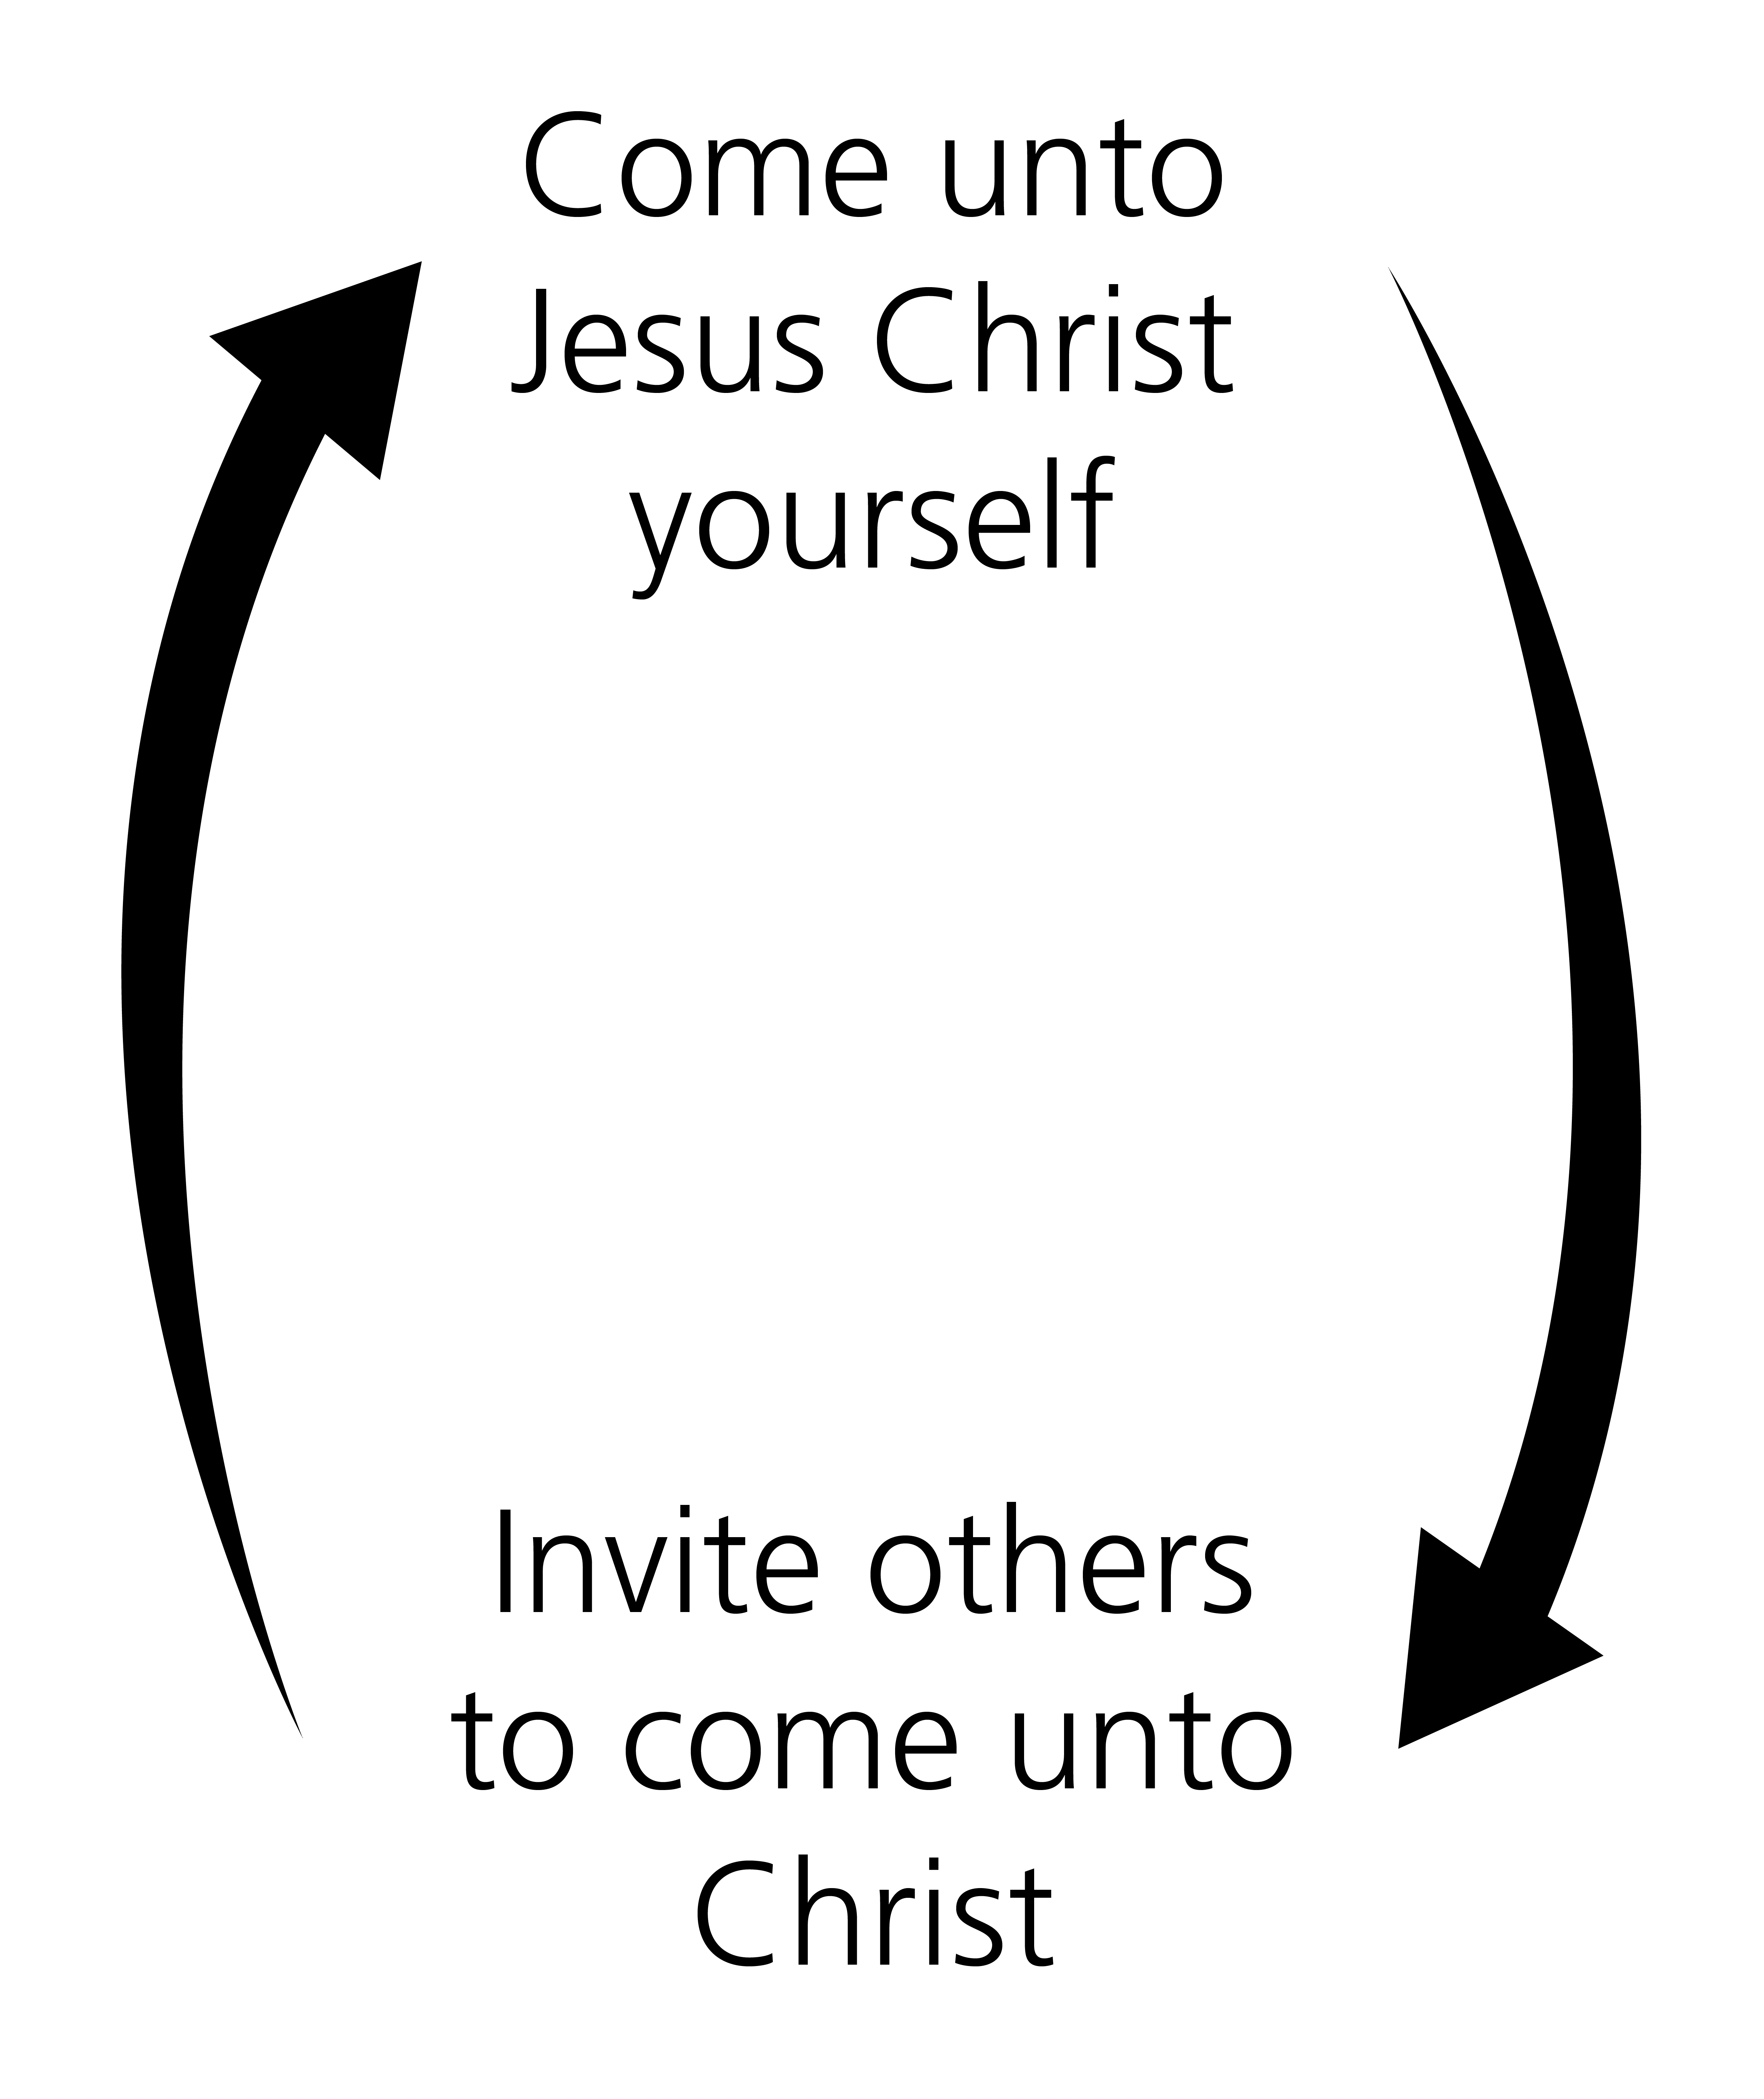 A diagram outlining how we can come closer to Christ by bringing others to Him.